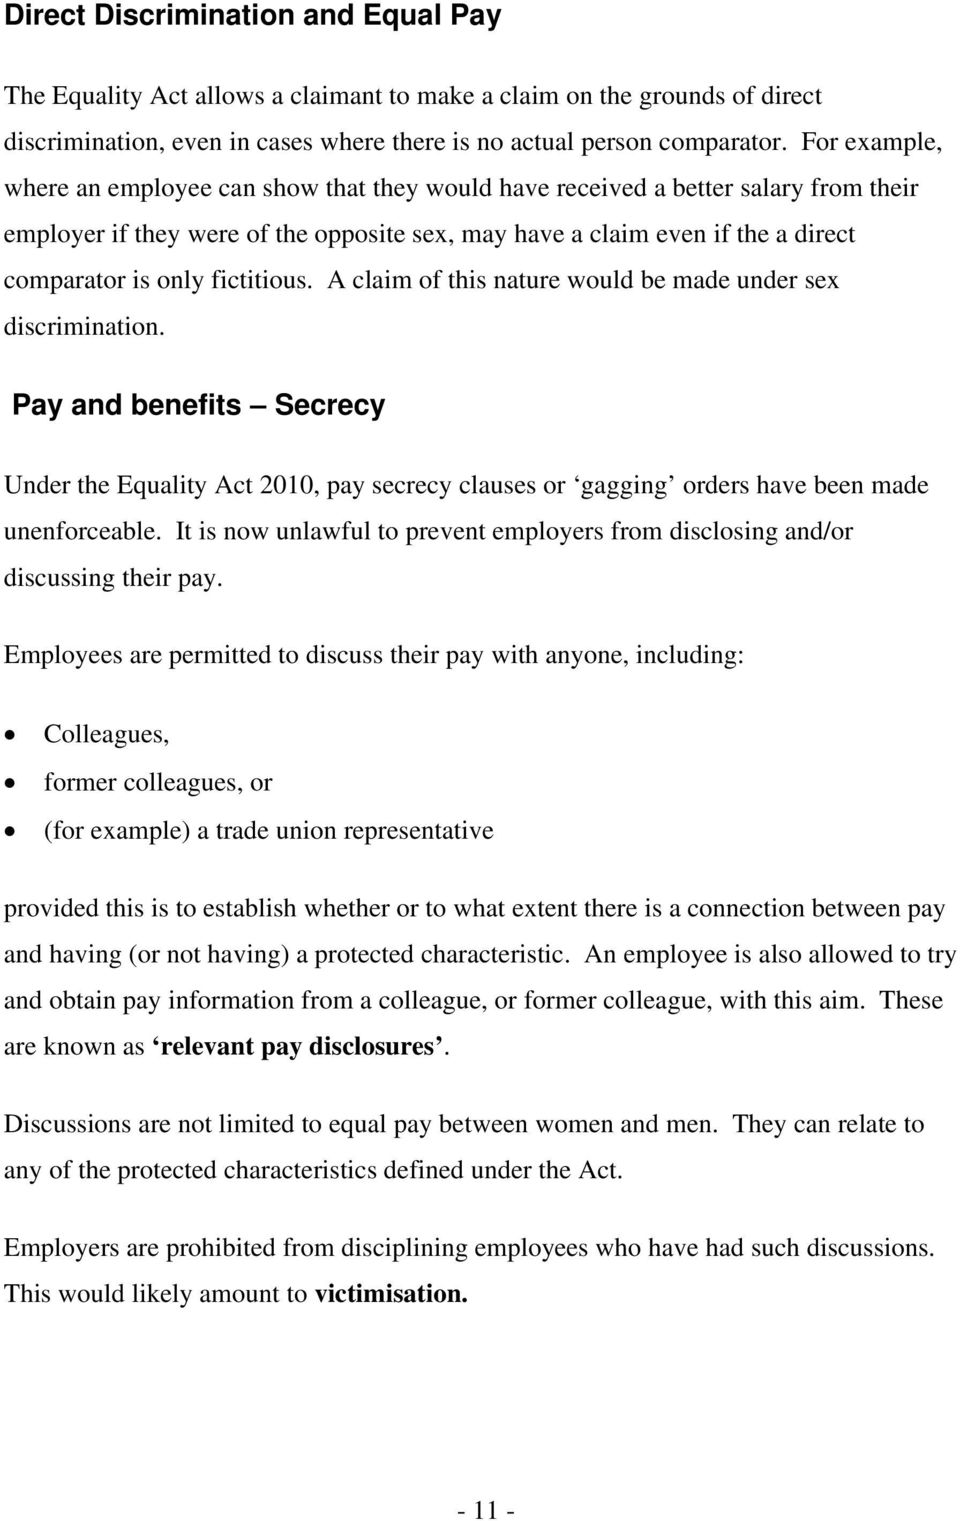 fictitious. A claim of this nature would be made under sex discrimination. Pay and benefits Secrecy Under the Equality Act 2010, pay secrecy clauses or gagging orders have been made unenforceable.